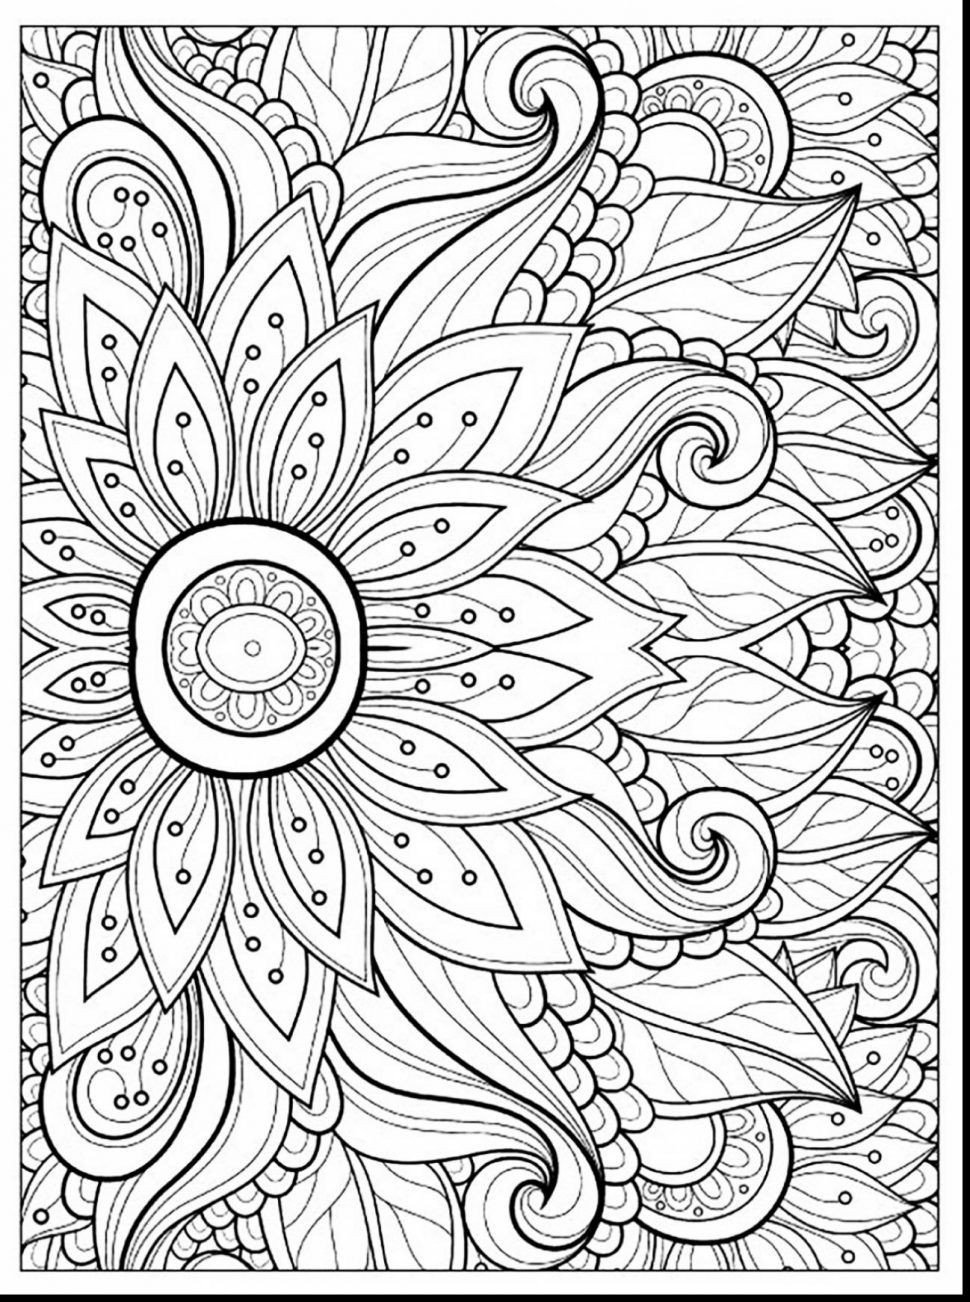 luxury idea coloring pages for middle school math worksheets pdf book frees fantastic